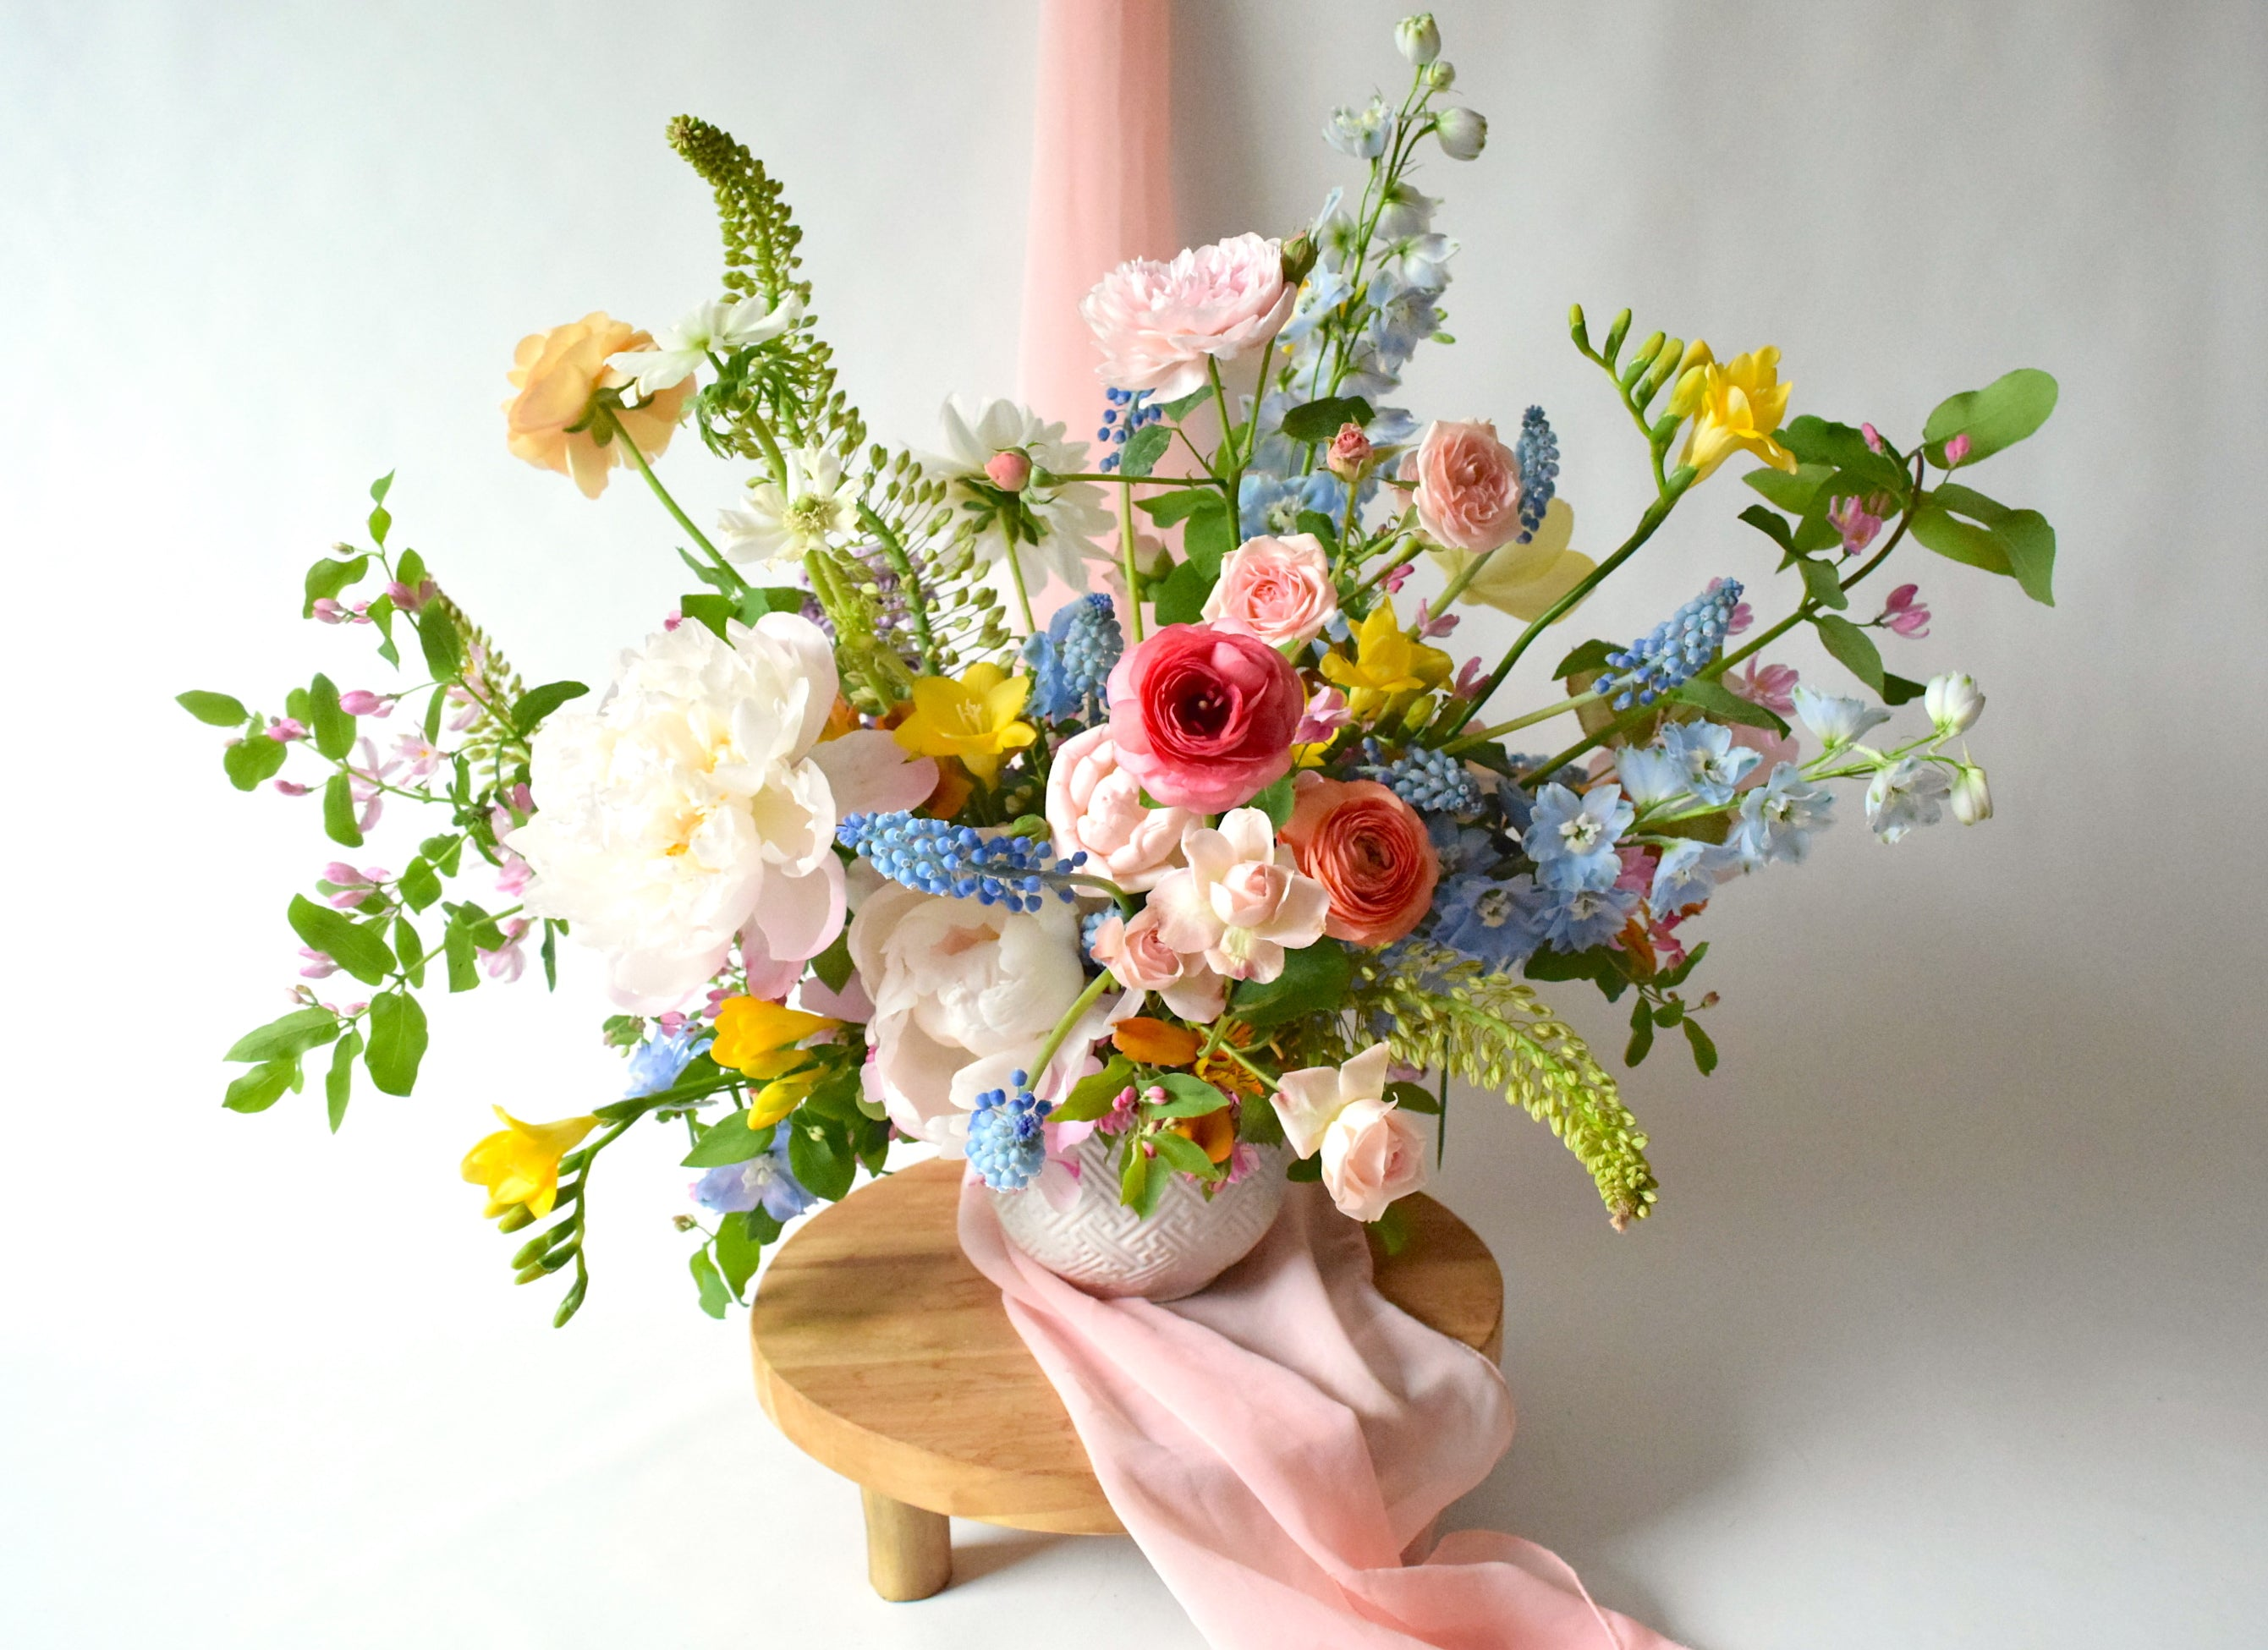 Wild north flowers voted best florist in toronto free delivery along with daily deliveries we do weddings and events all year beautiful flowers izmirmasajfo